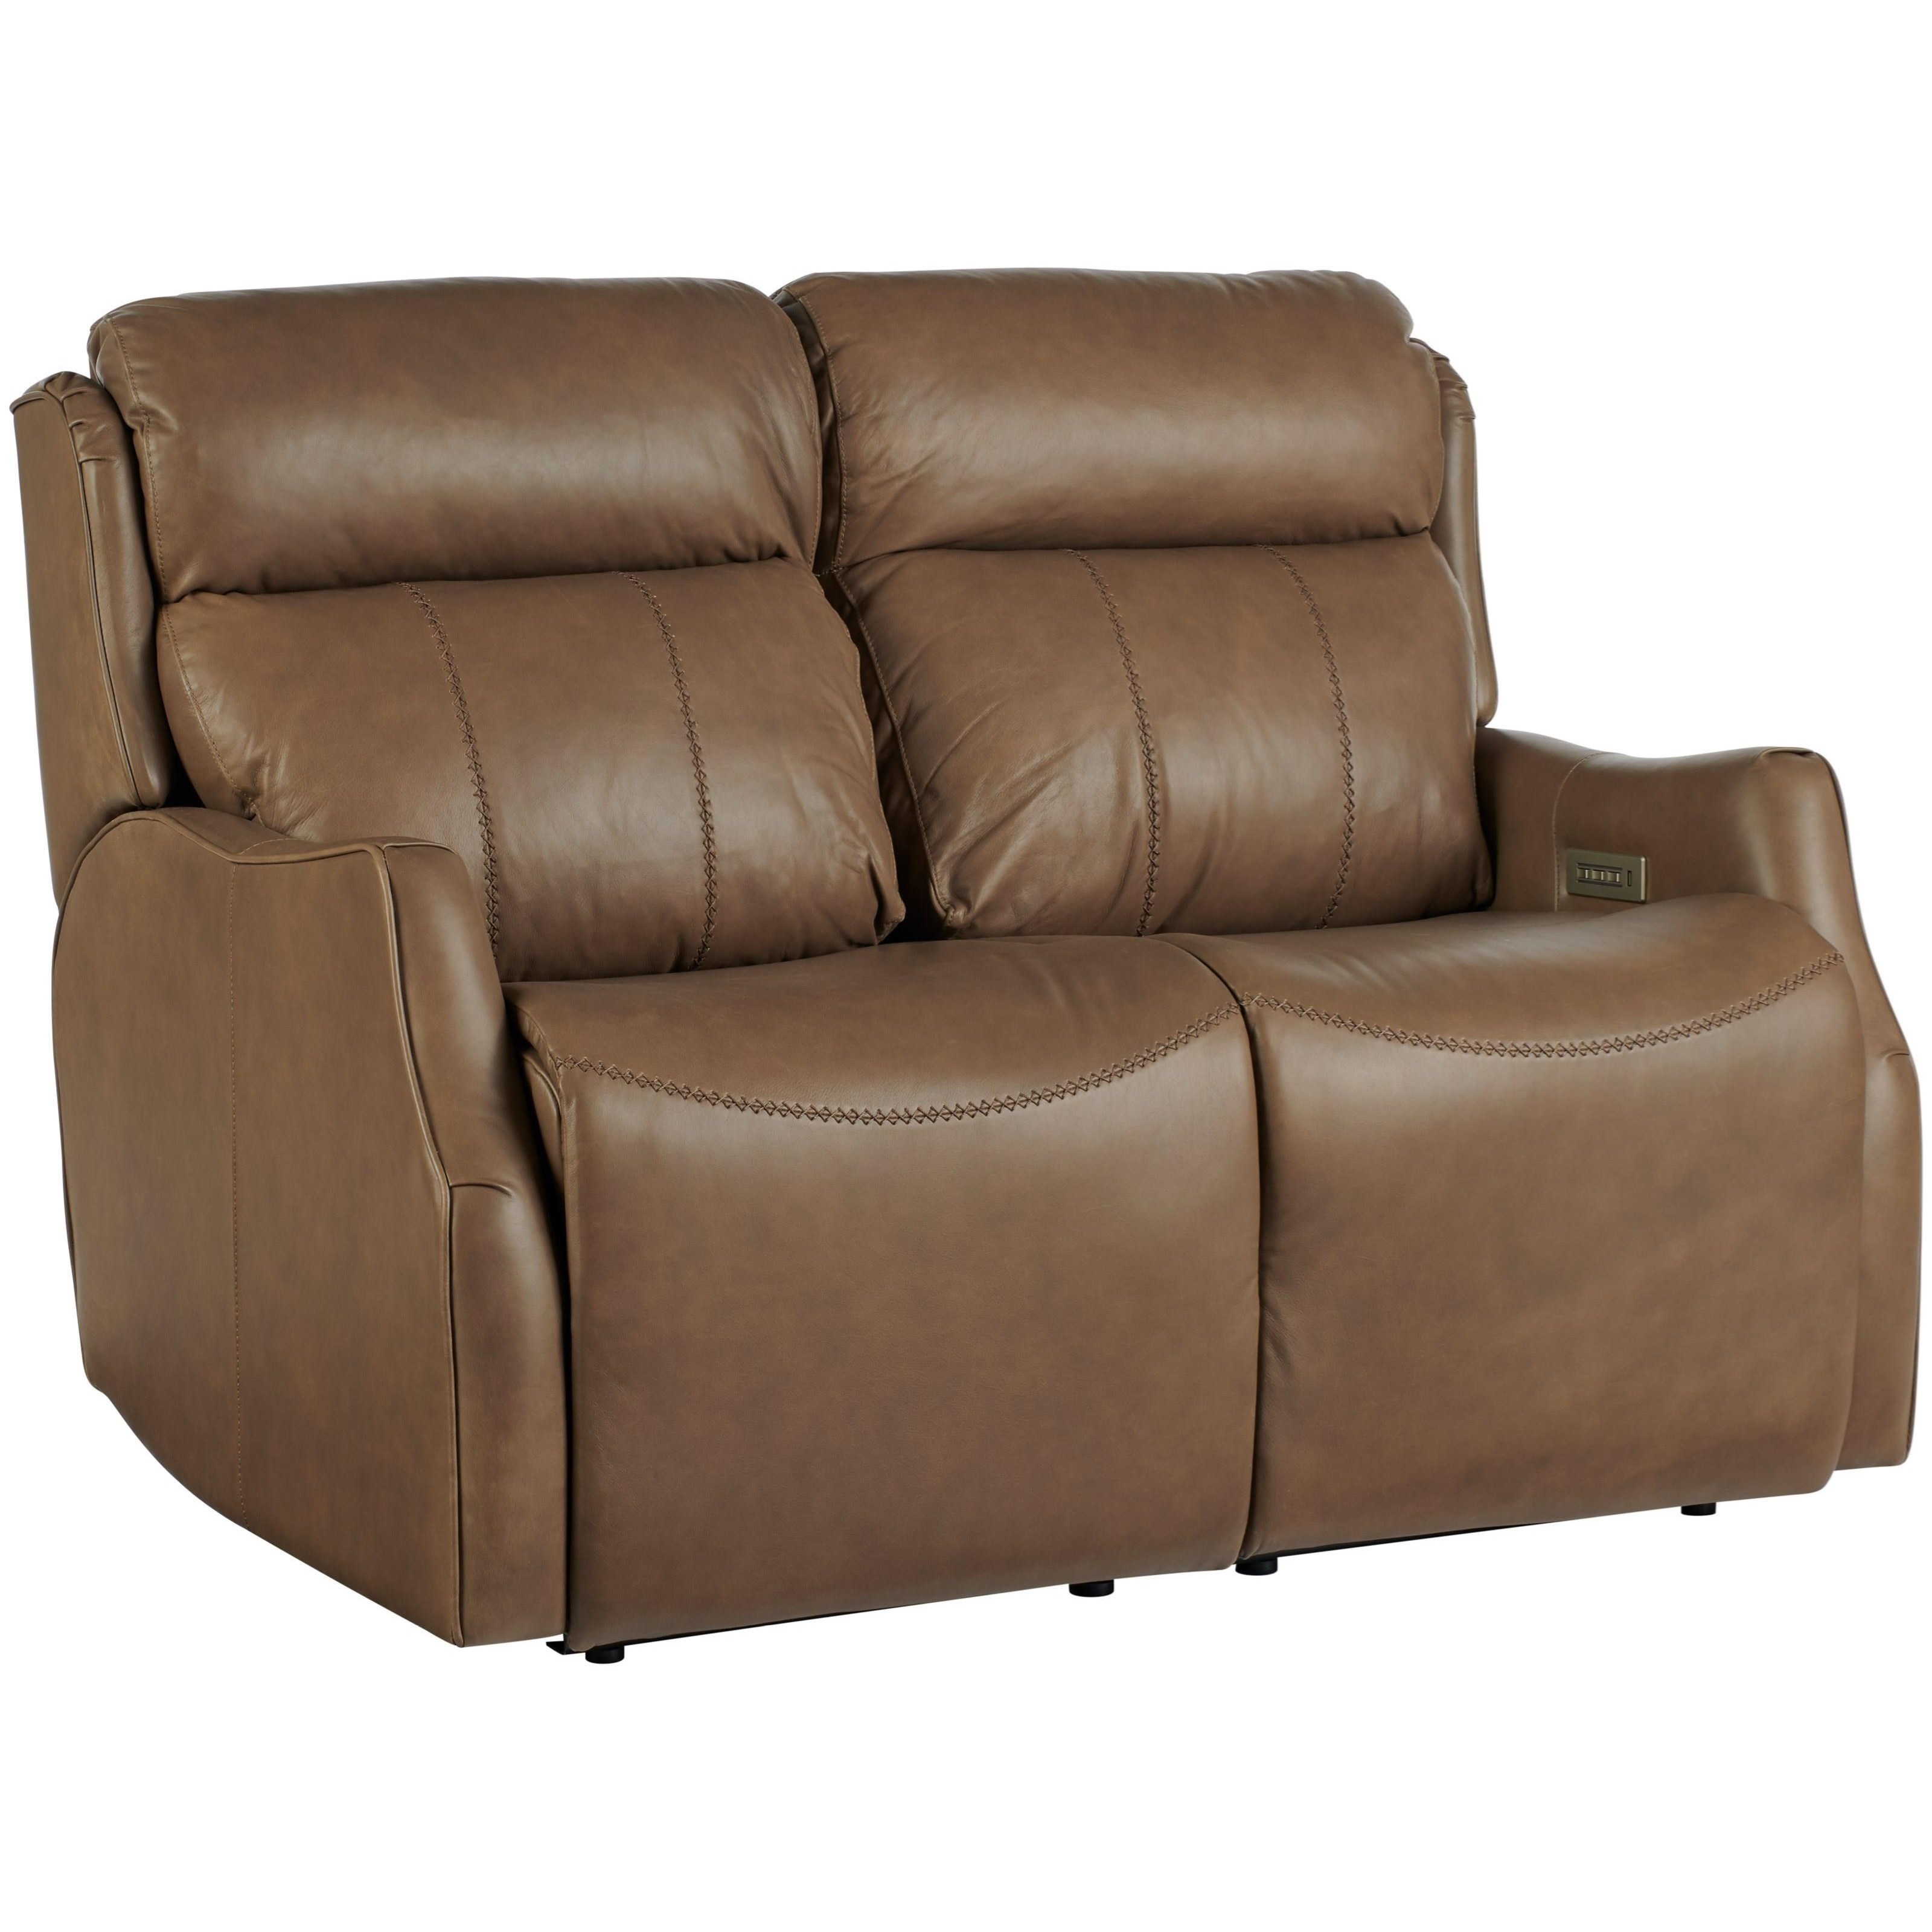 Motion Watson Motion Loveseat by Universal at Baer's Furniture